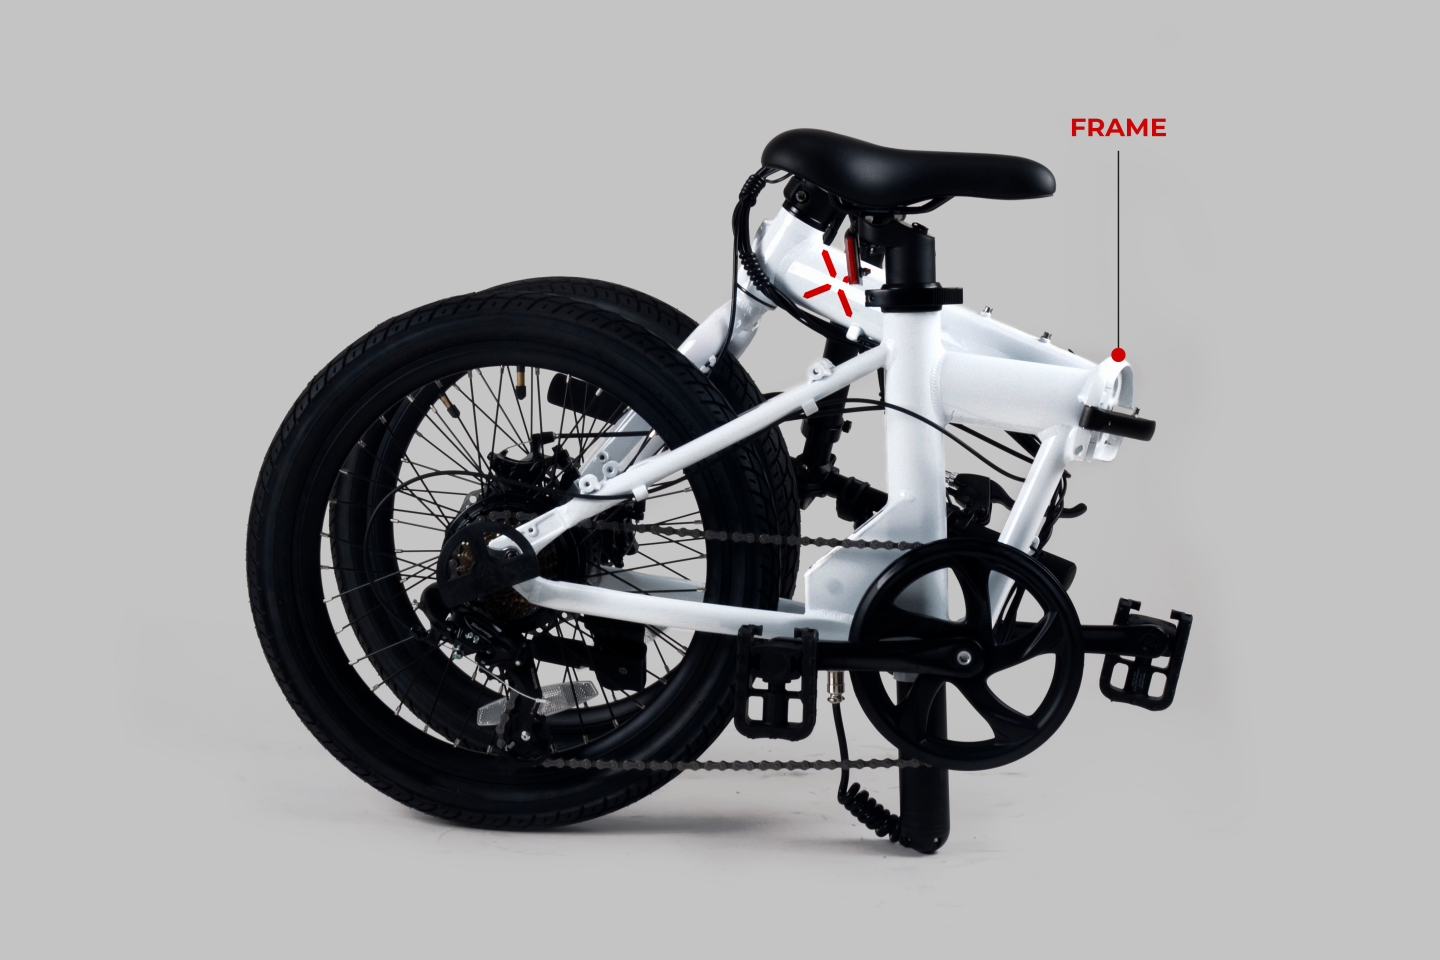 X Mobility Motors has not revealed its folded dimensions, but the H1 looks like a compact between-ride haul